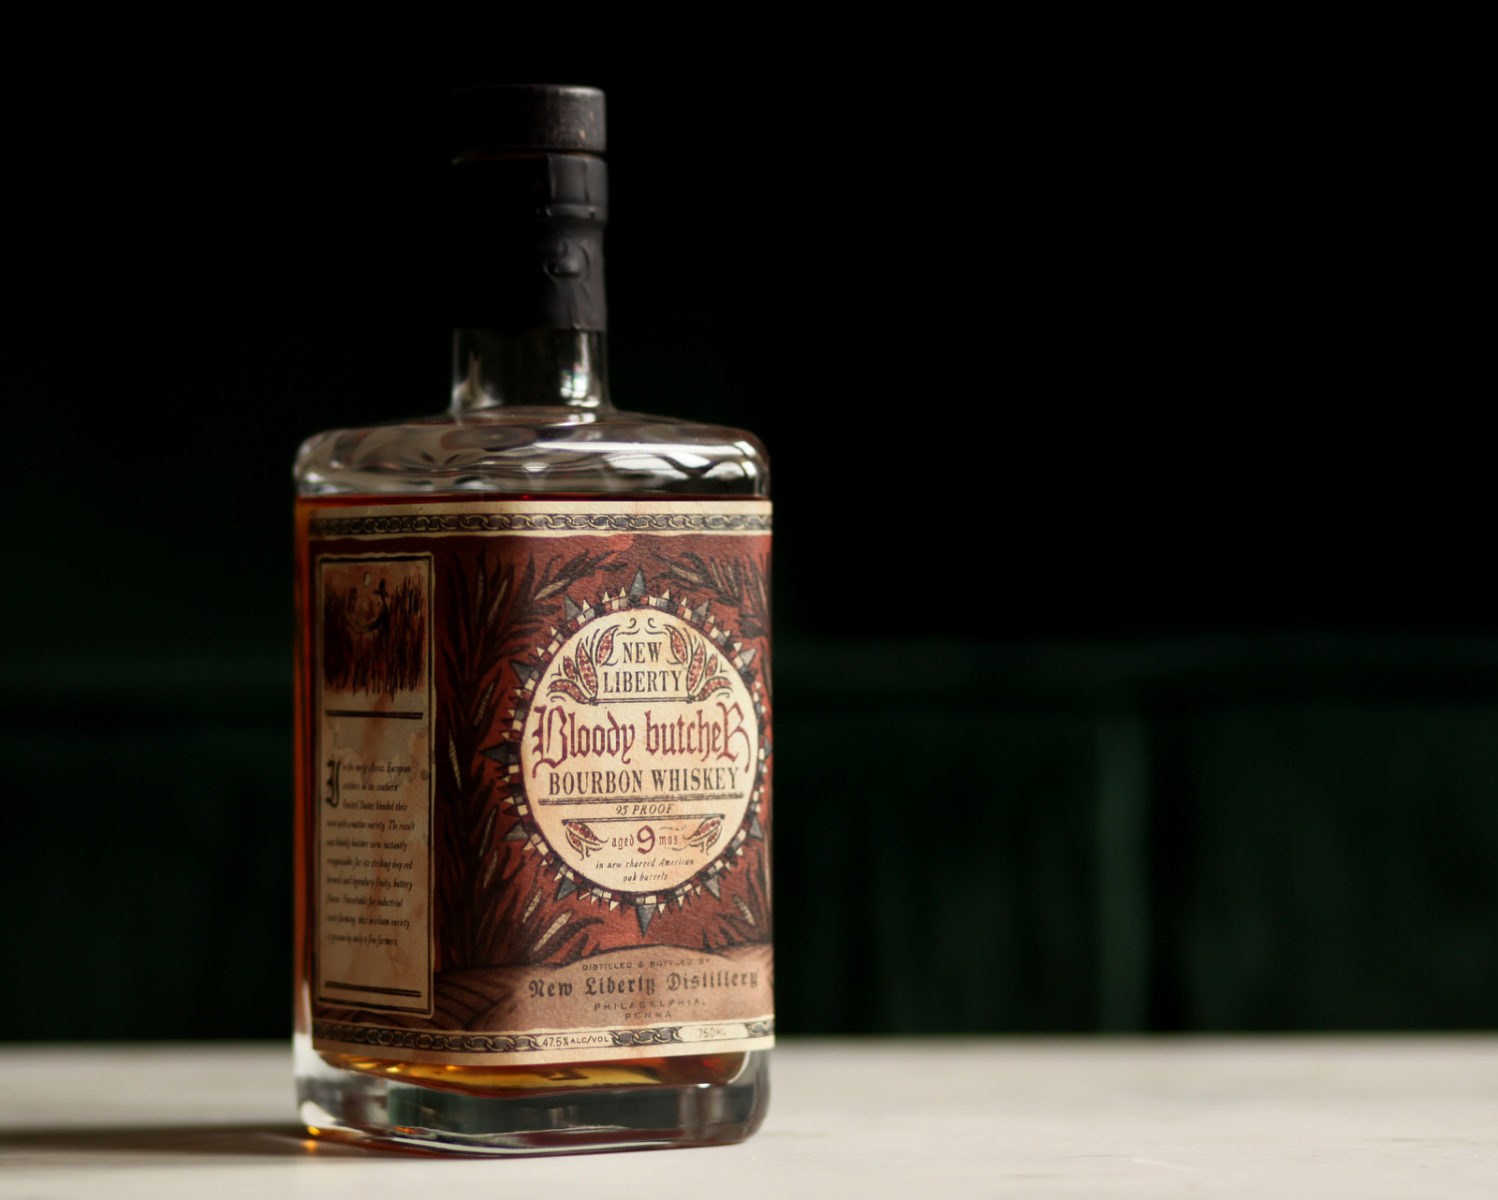 Bloody Butcher Bourbon Whiskey